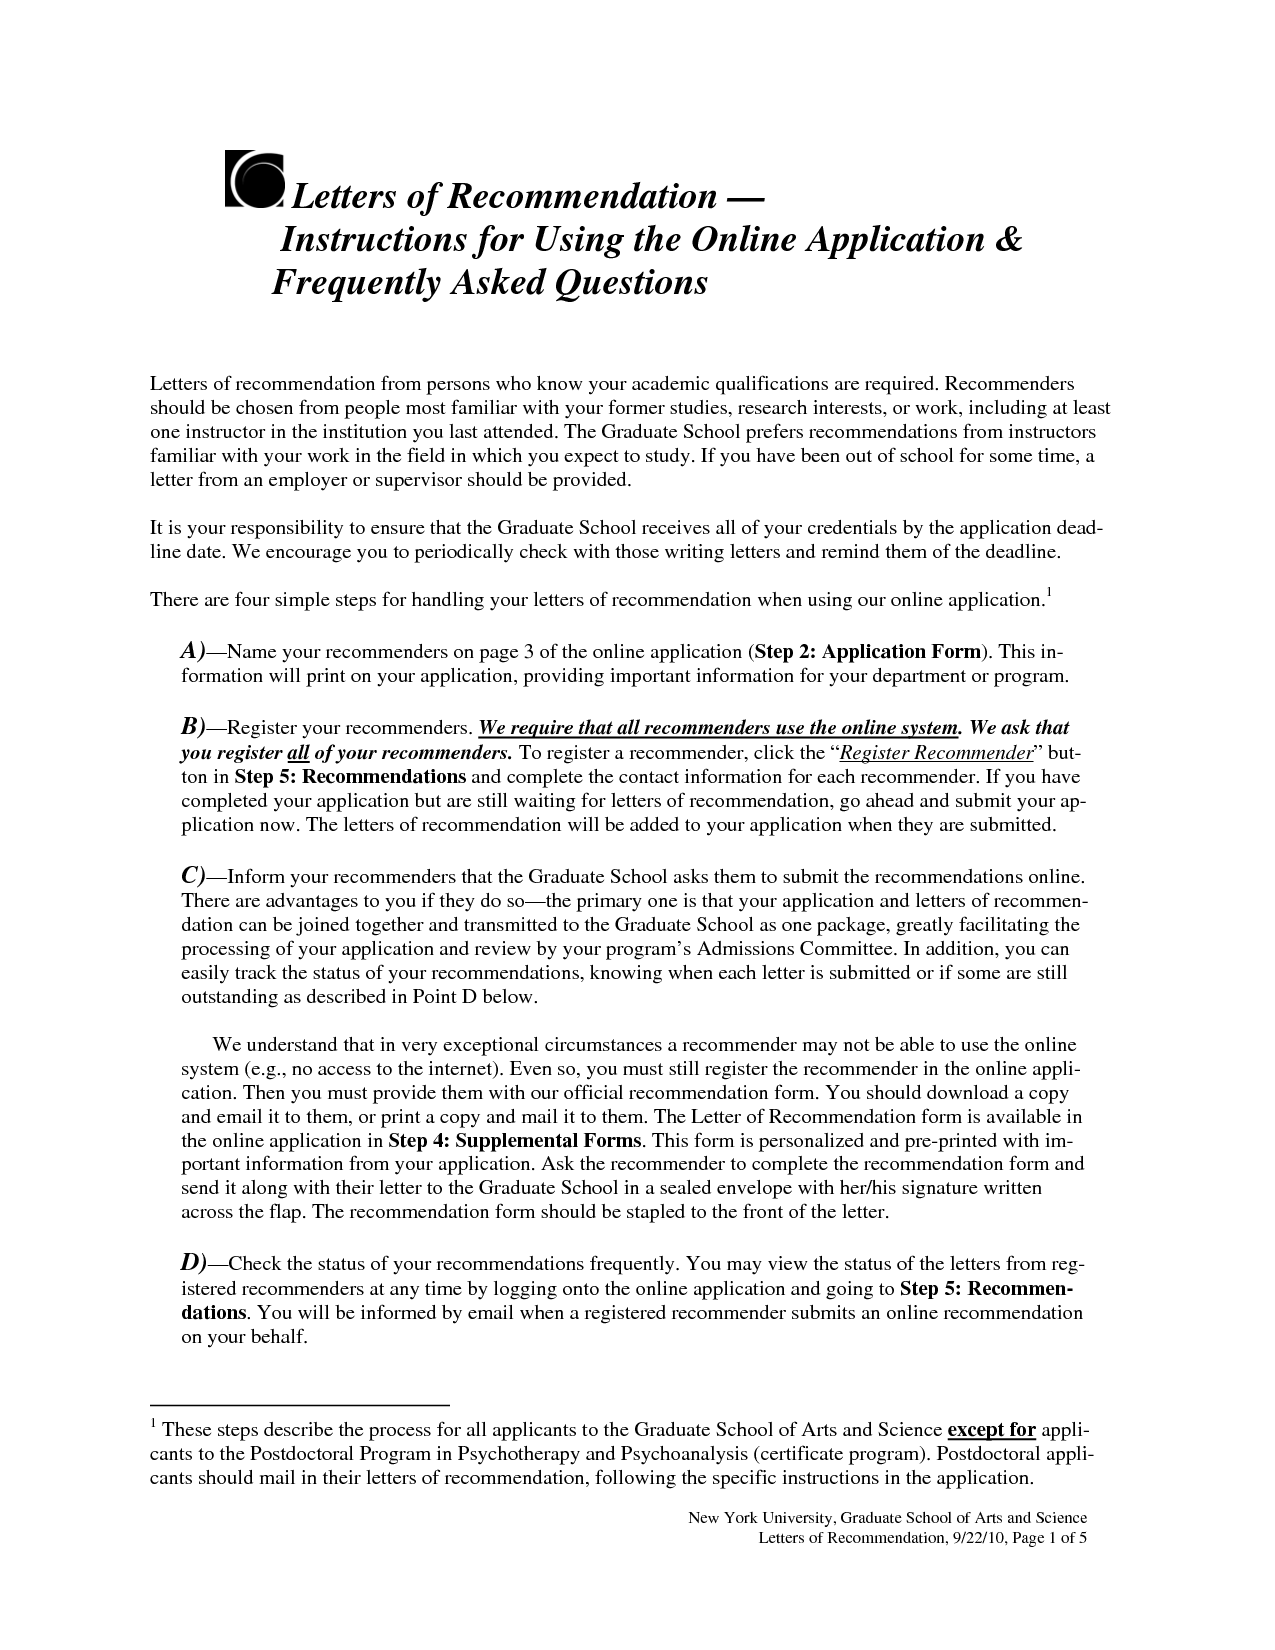 Recommendation Letter For Graduate School bbq grill recipes